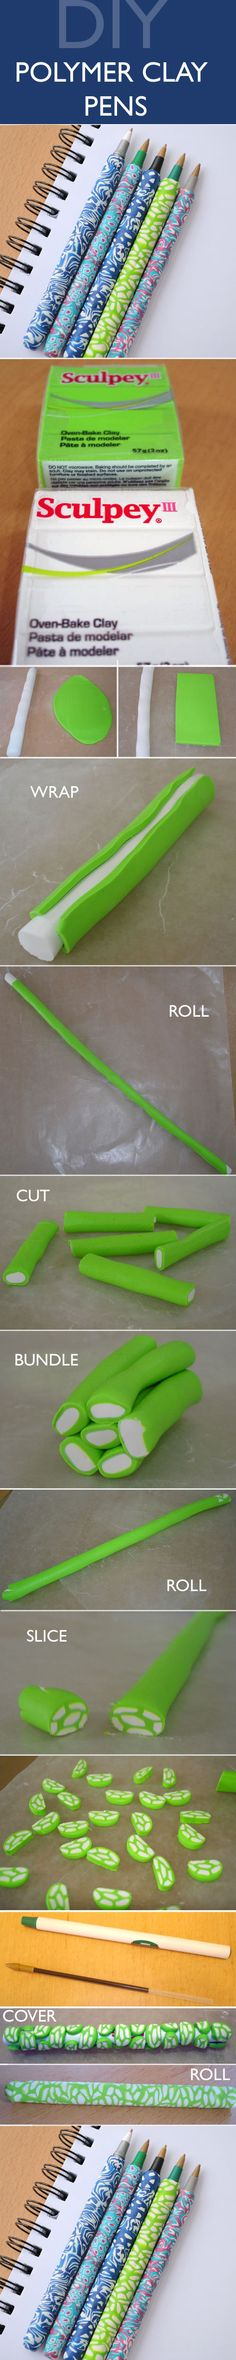 Easy tutorial to make polymer clay covered pens. Mom and I used to make these when I was in grade school. They were fun!